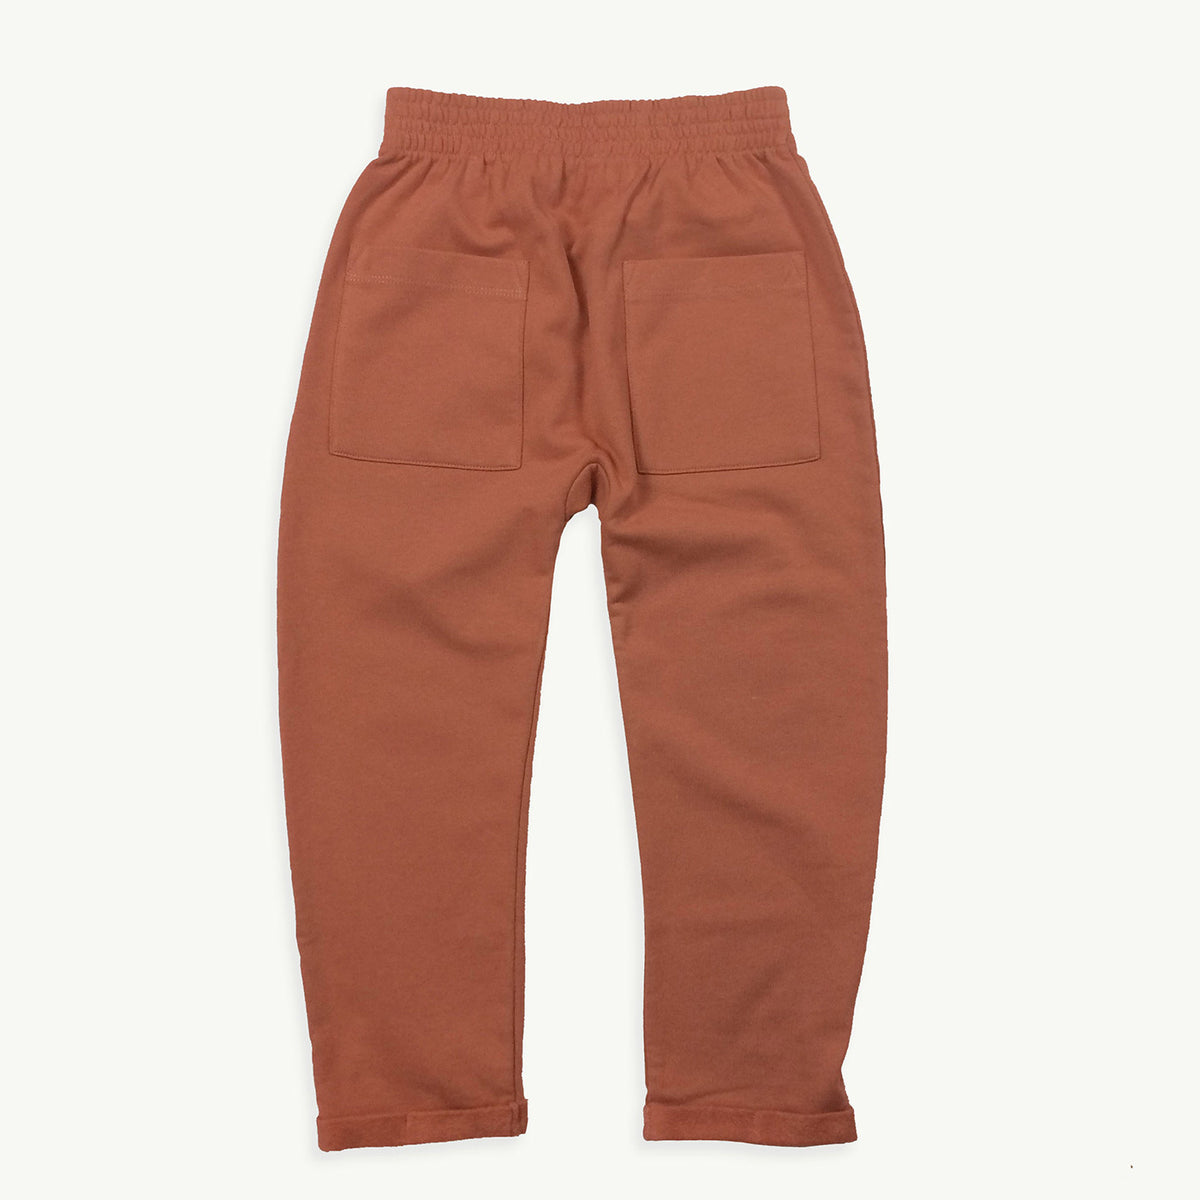 Clay Baggy Sweatpant